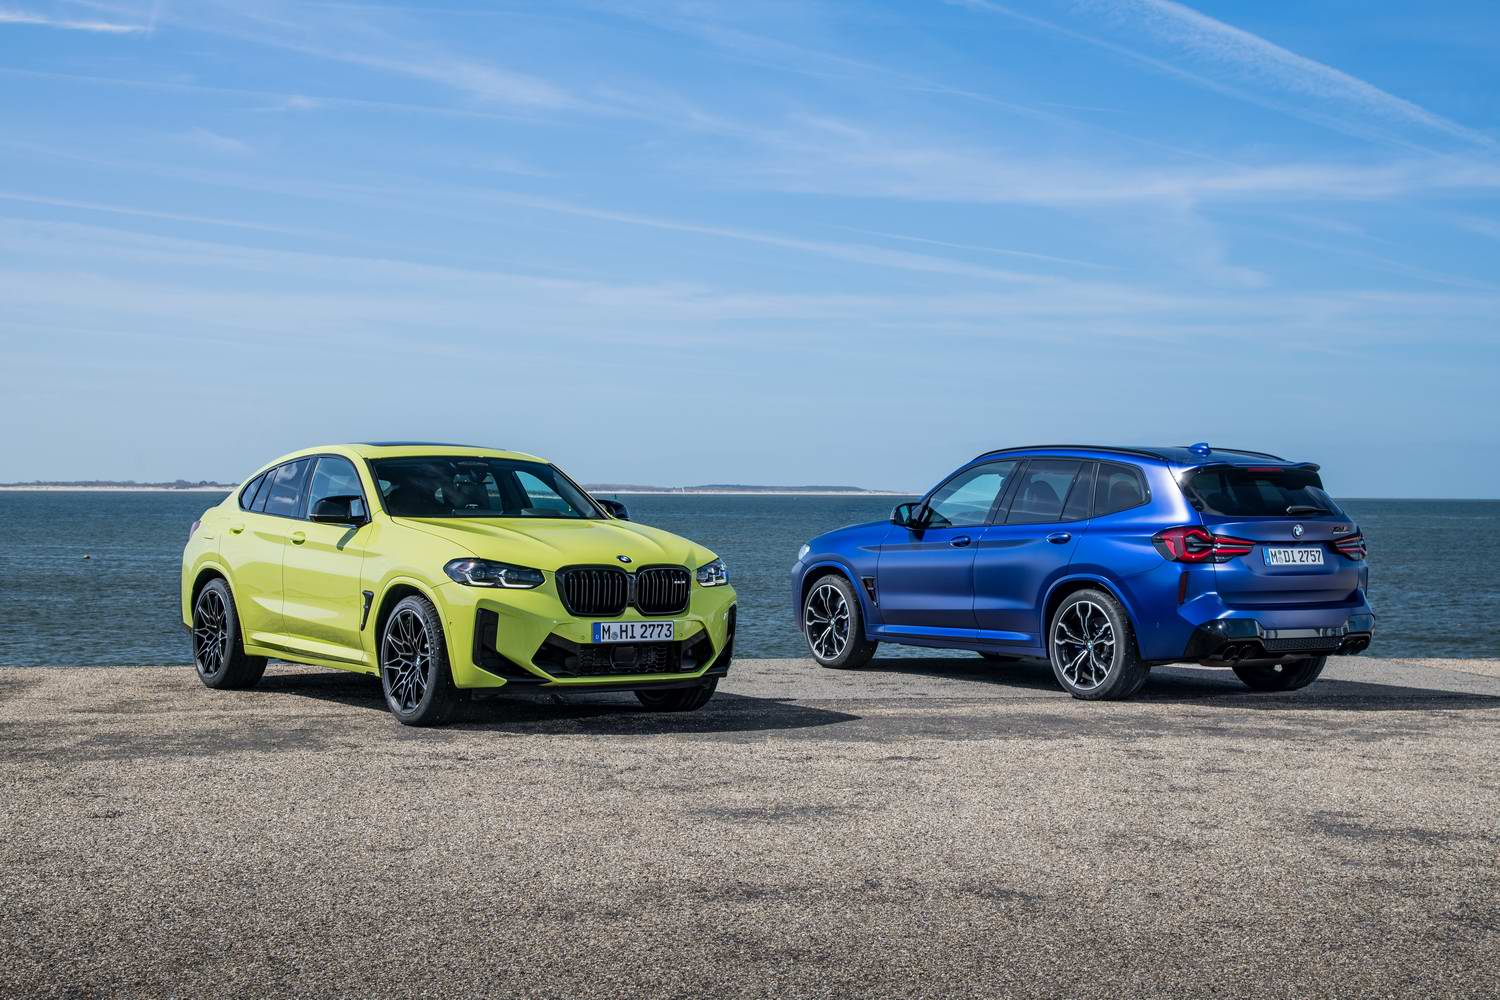 Car News | BMW Ireland shows off new X3 M and X4 M | CompleteCar.ie